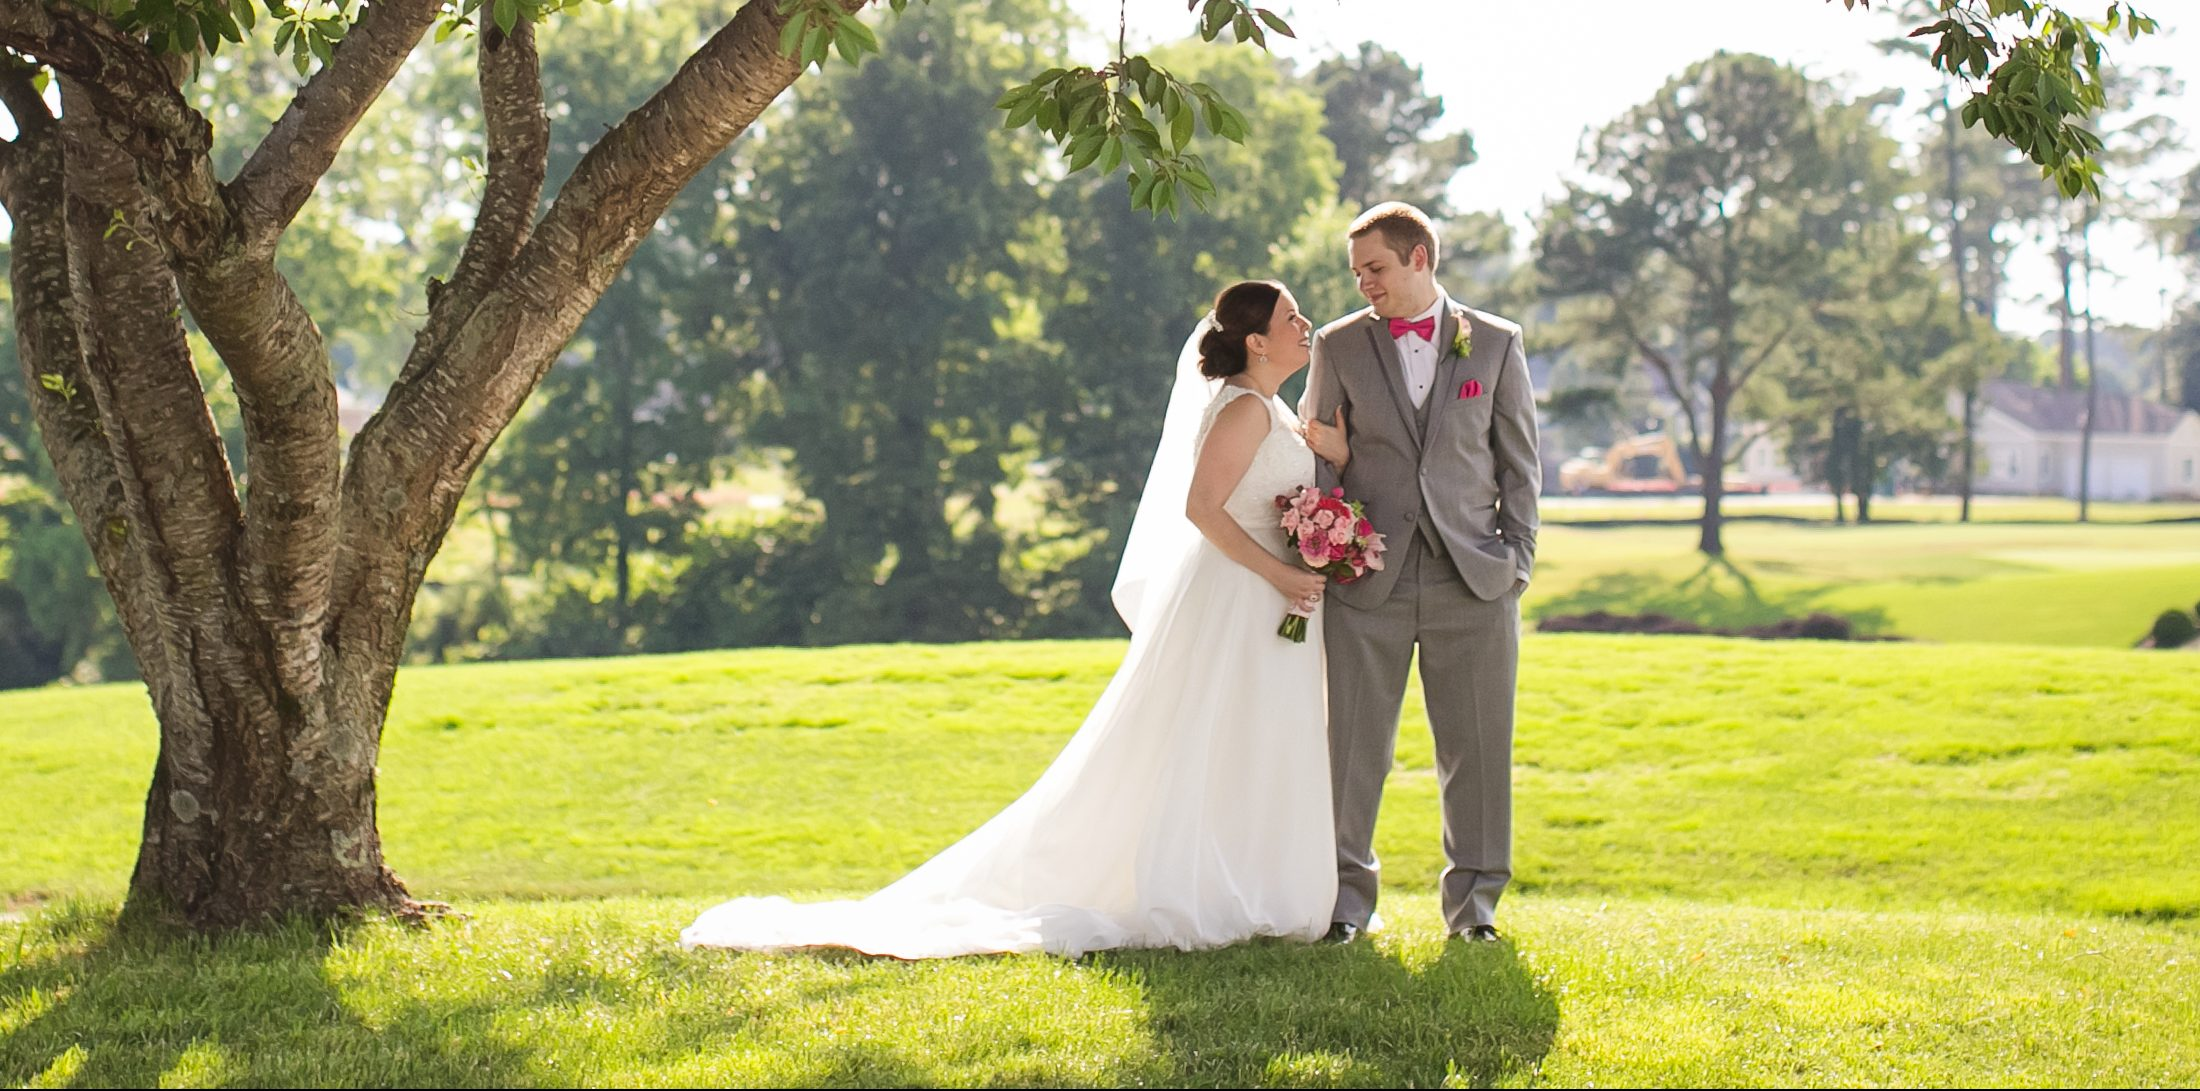 Wedding Couple with Golf Course in Background